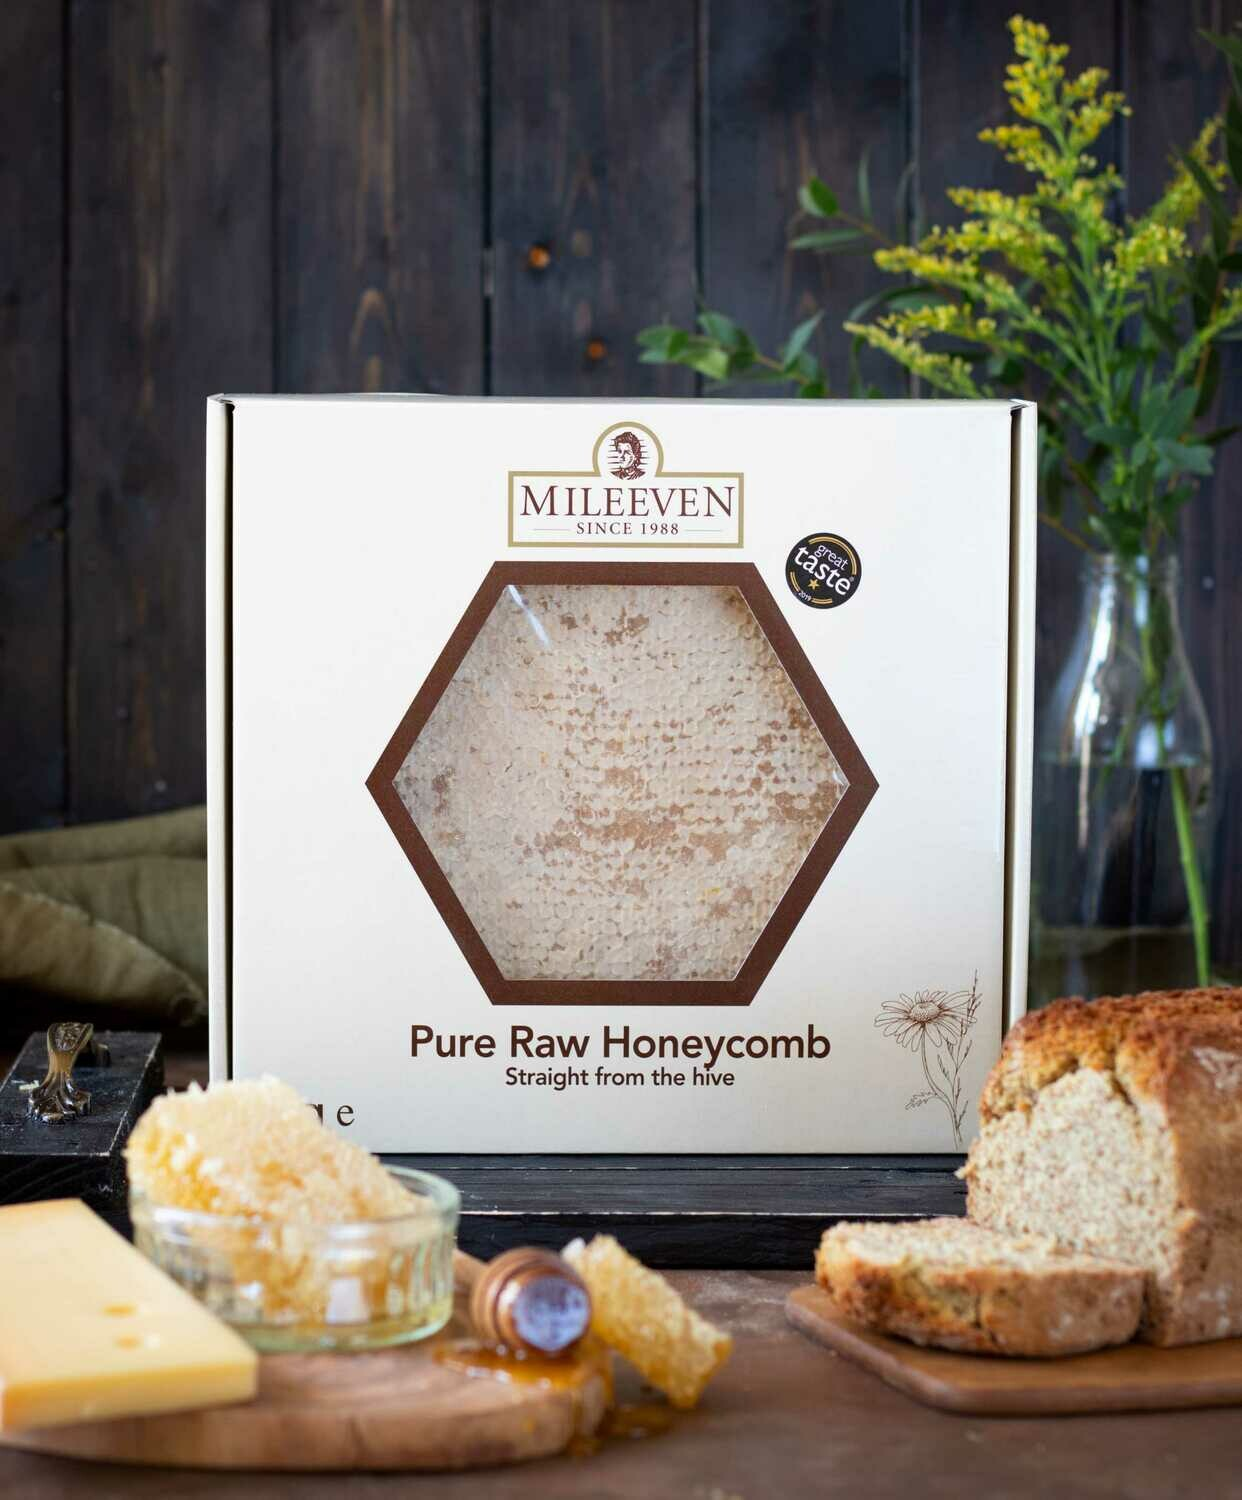 Exclusive to the Online Shop! Mileeven 1Kg Pure, Raw Honeycomb, Straight from the Hive